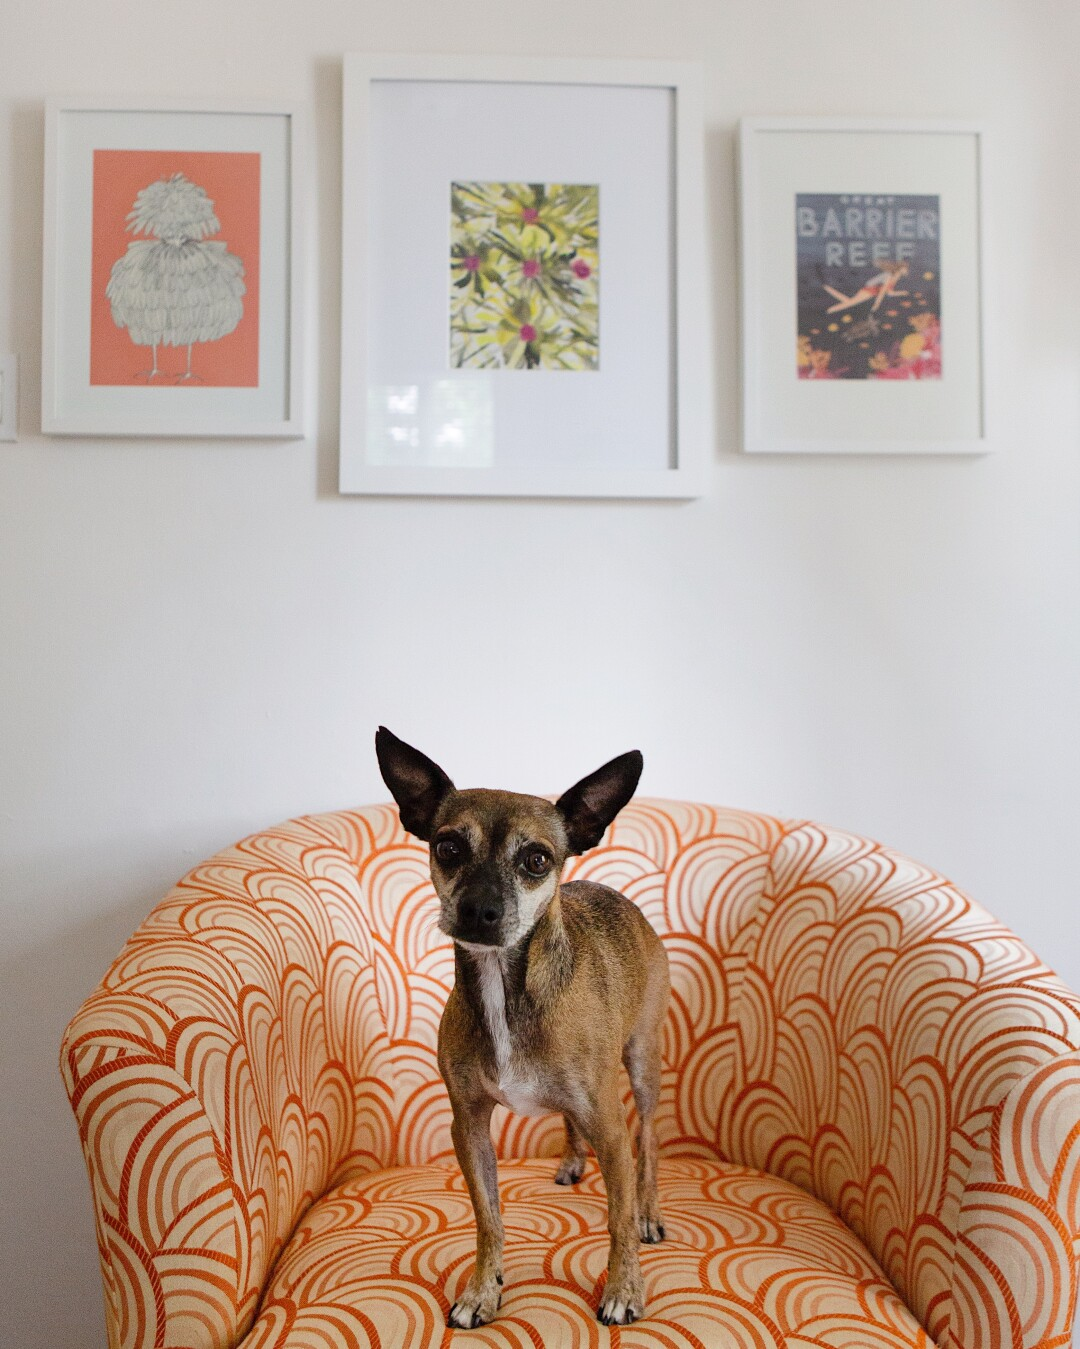 A dog stands on a chair